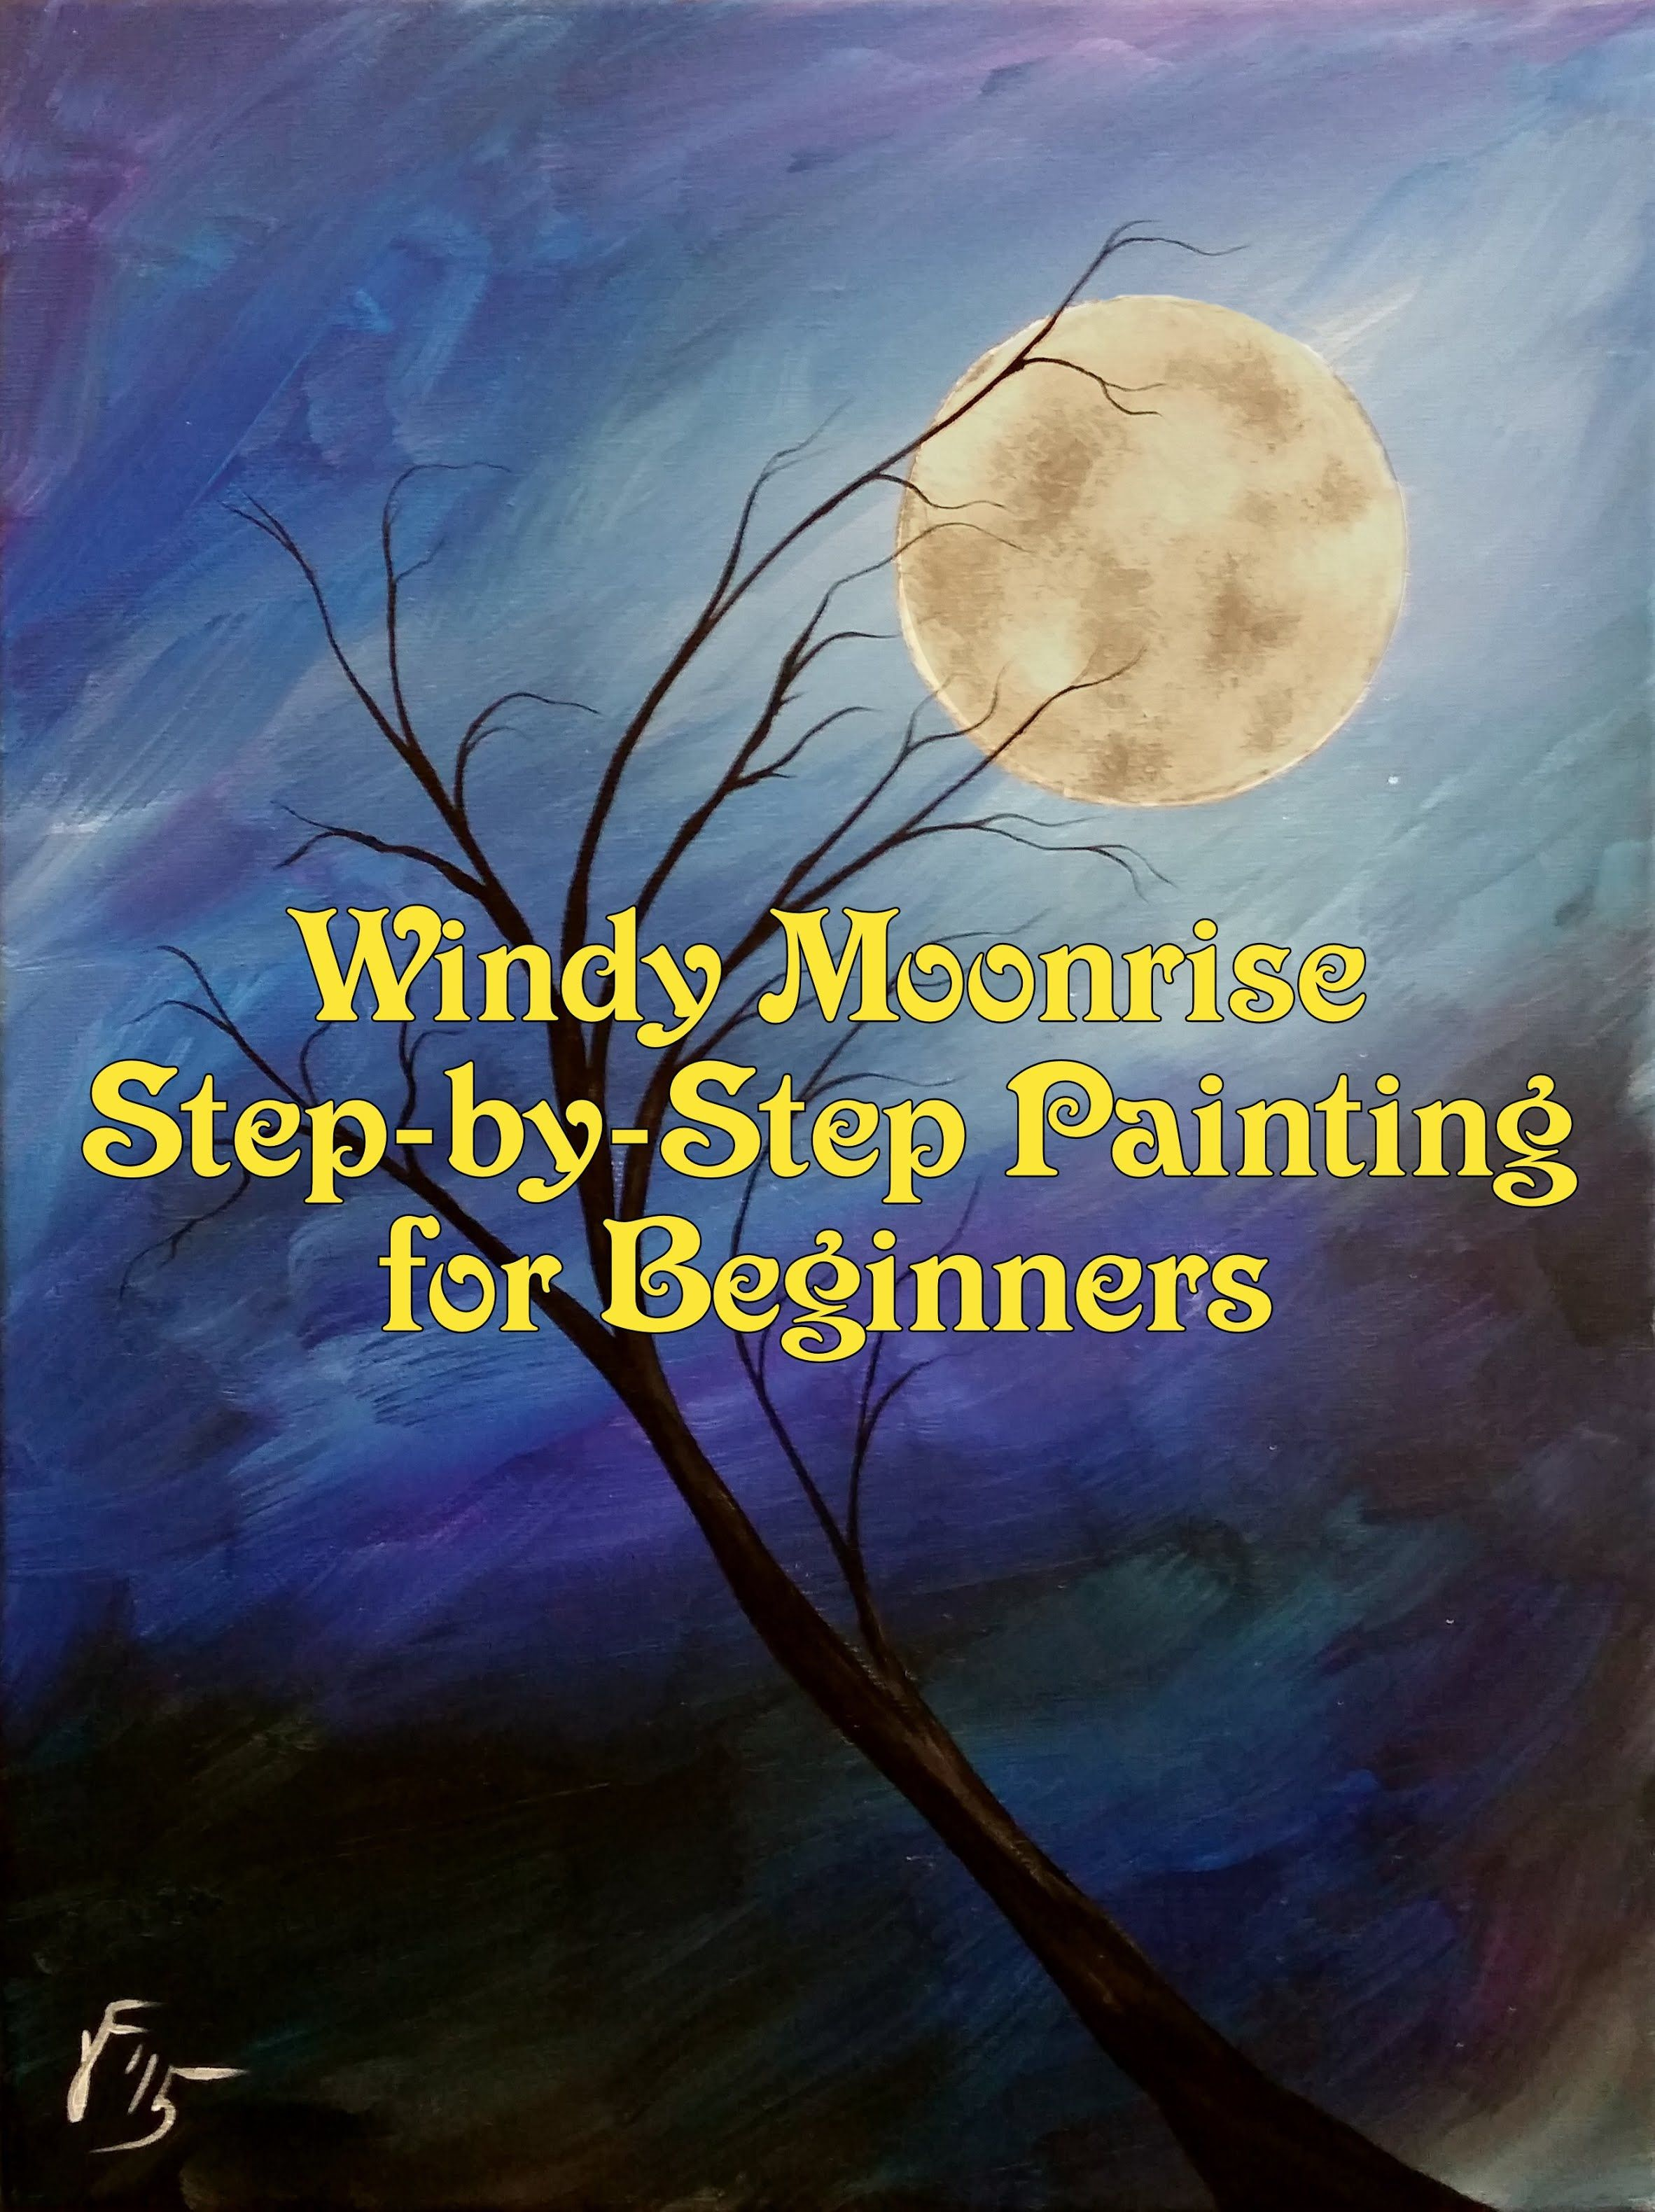 Windy moonrise step by step acrylic painting on canvas for Acrylic painting for beginners step by step